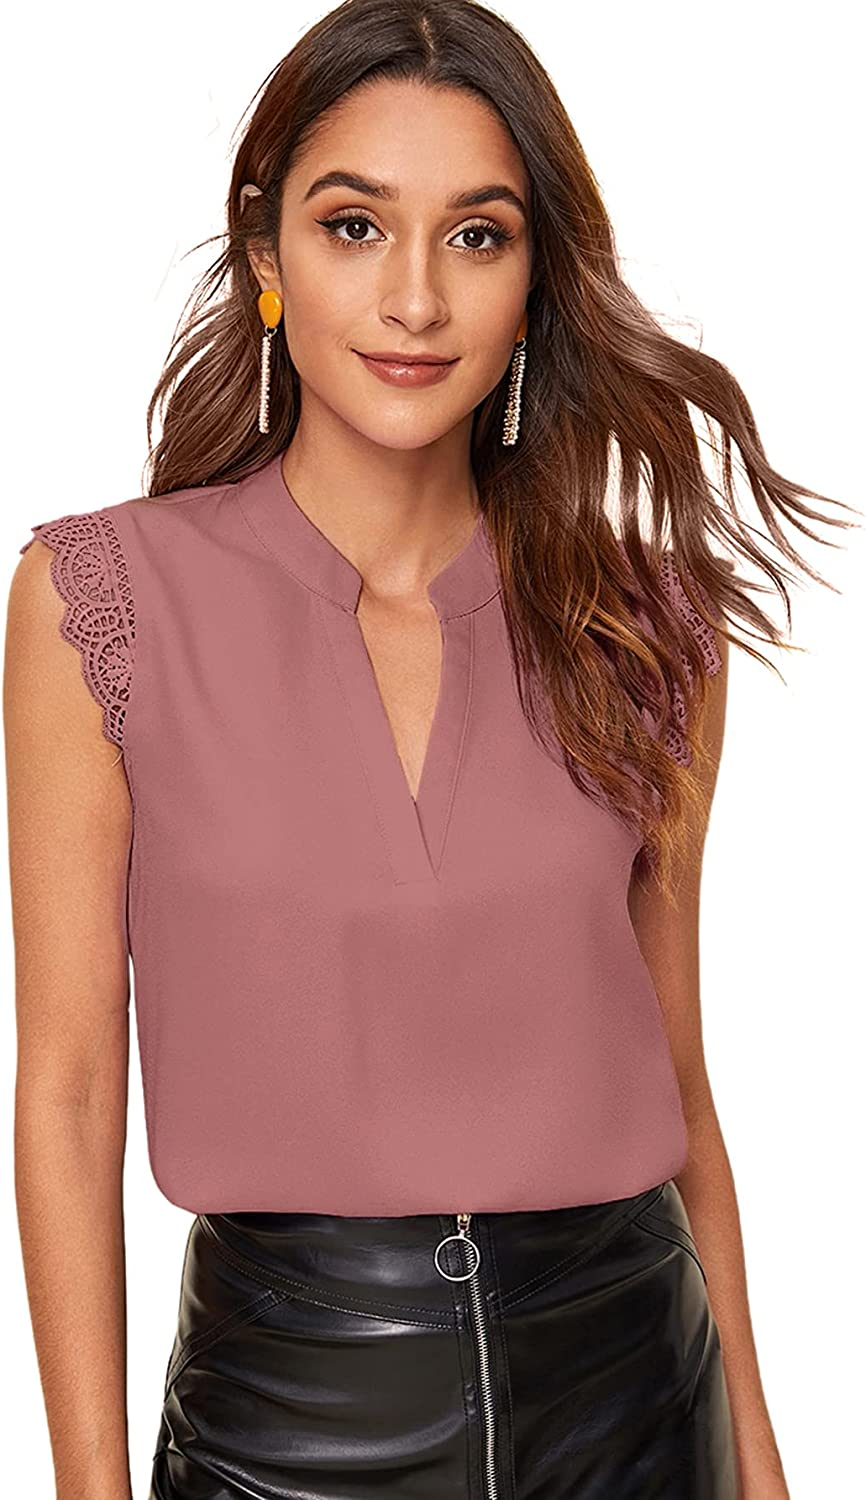 Milumia Women's Elegant Notch V Neck Sleeveless Blouse Guipure Lace Work Office Solid Top